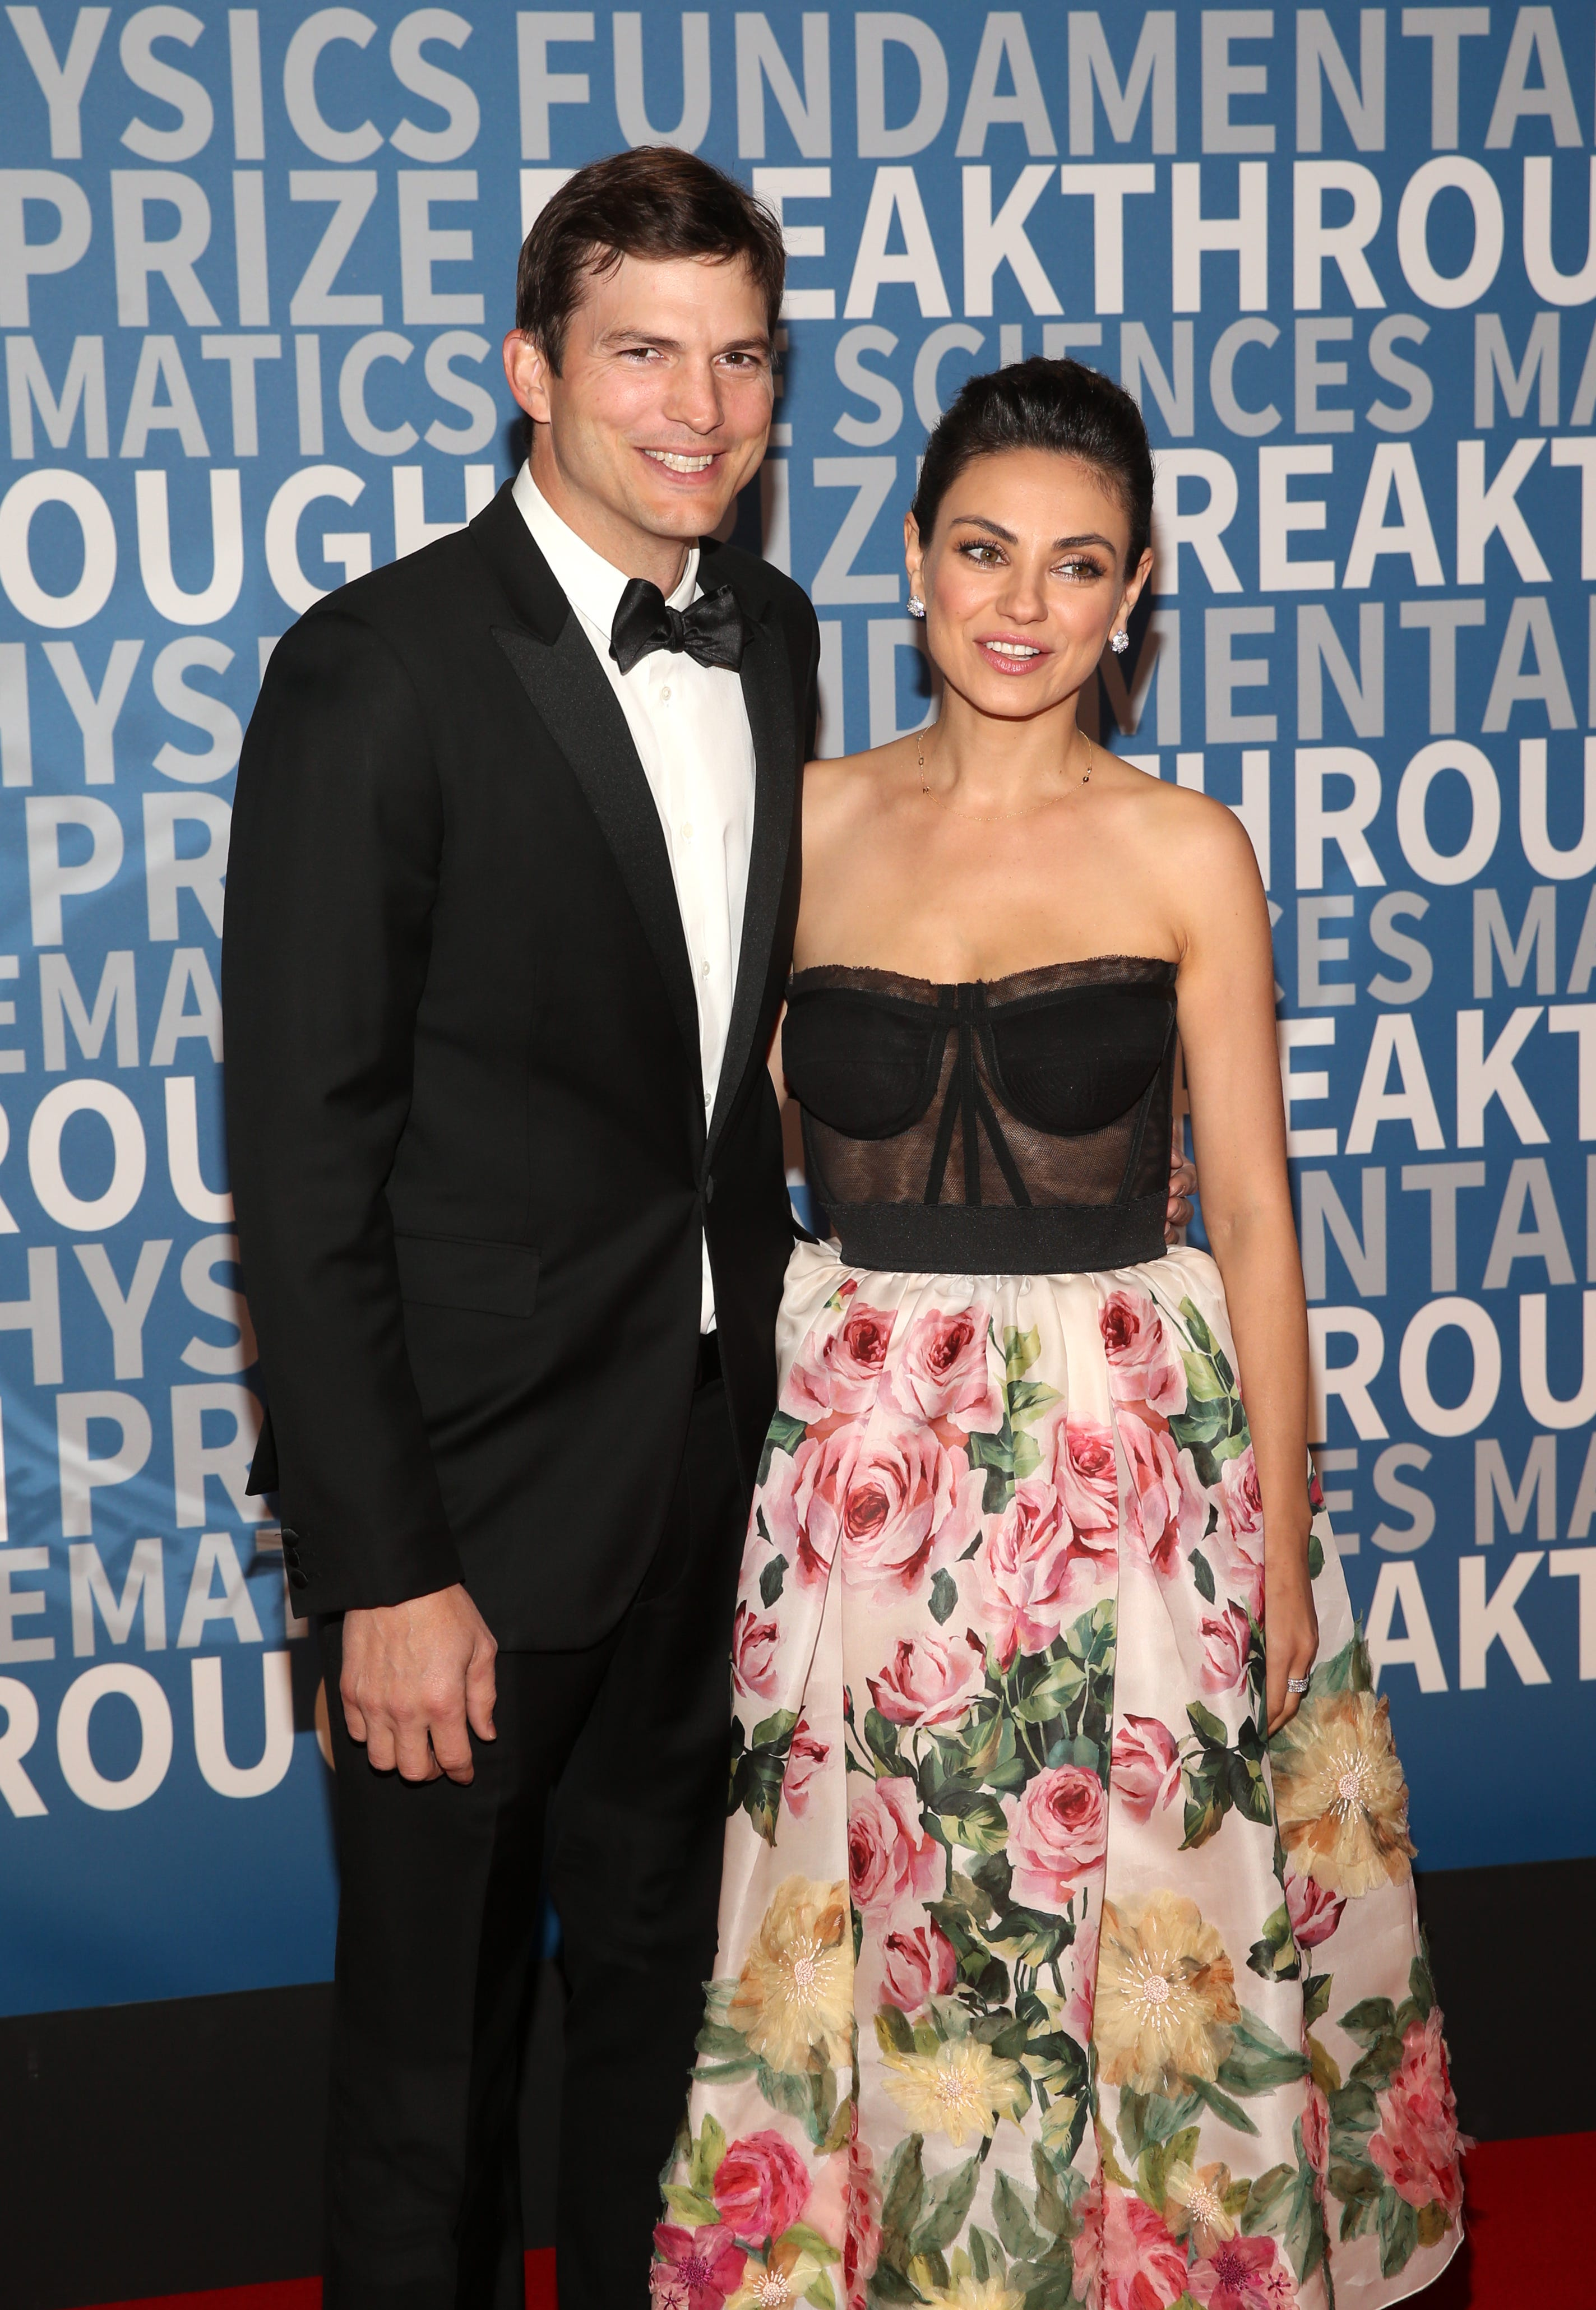 Kutcher and Kunis on the carpet.